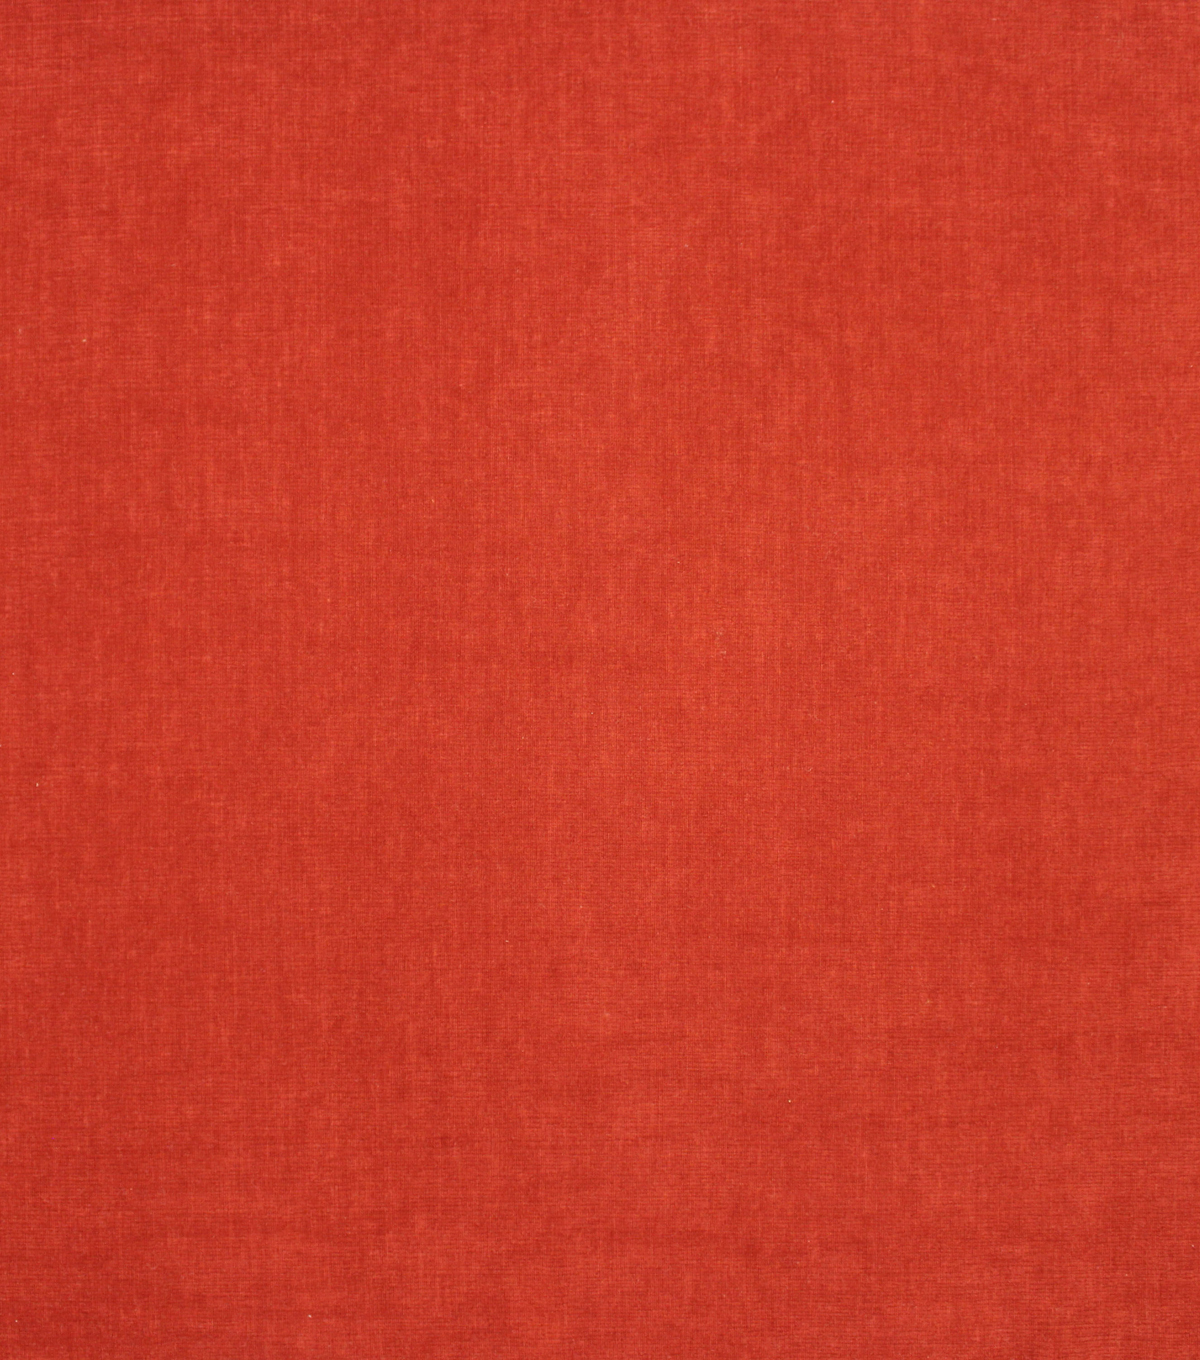 Upholstery Fabric-Barrow M8498-5500 Cabernet